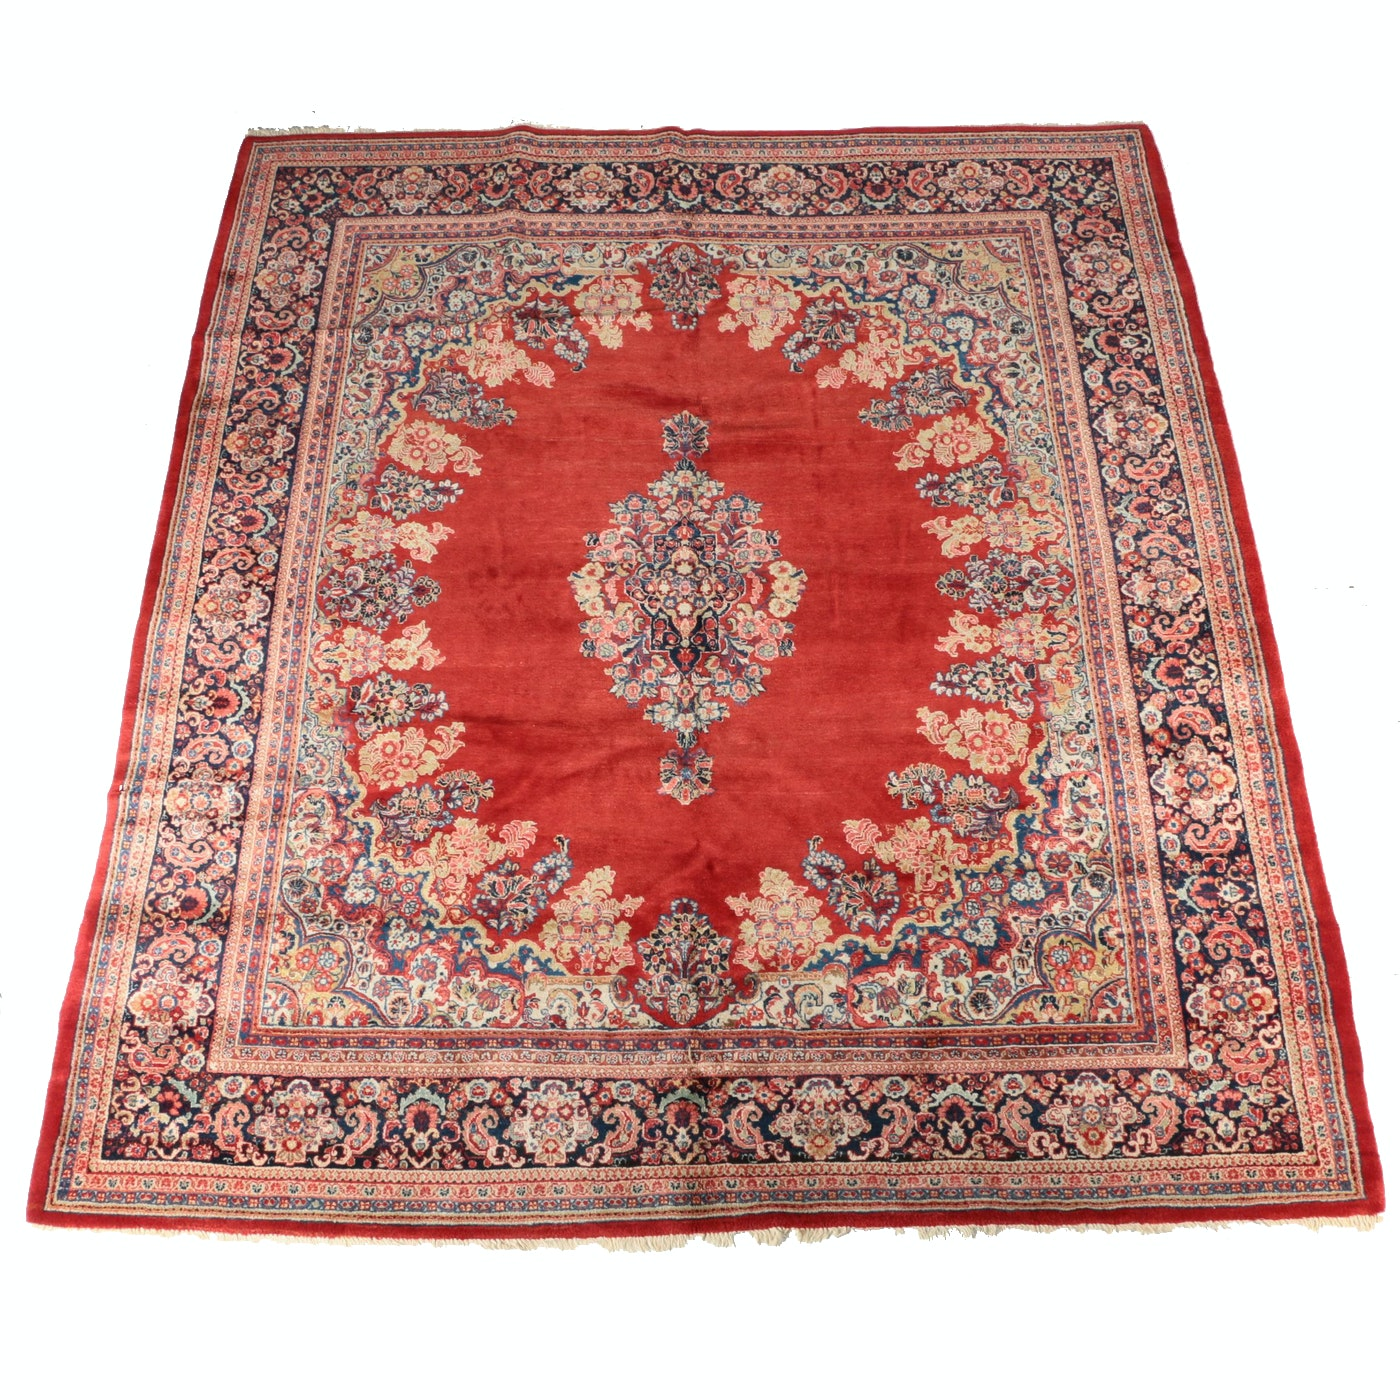 Vintage Finely Hand-Knotted Persian Sarouk Room Size Rug